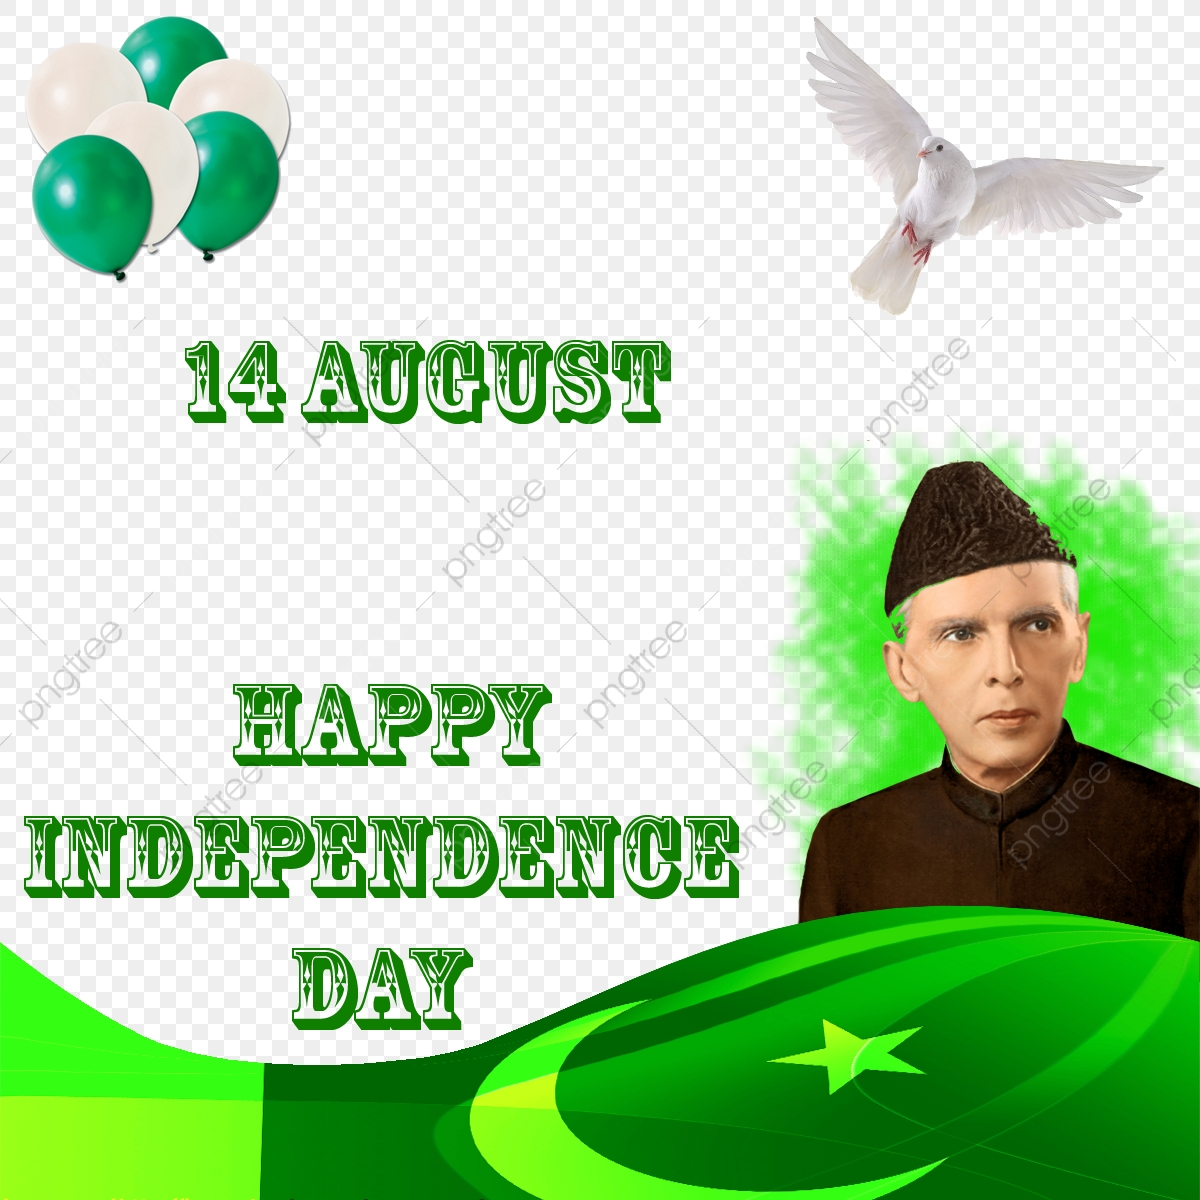 14 August Card Happy Independence Day Pakistan Happy Icons Card Icons Day Icons Png Transparent Clipart Image And Psd File For Free Download